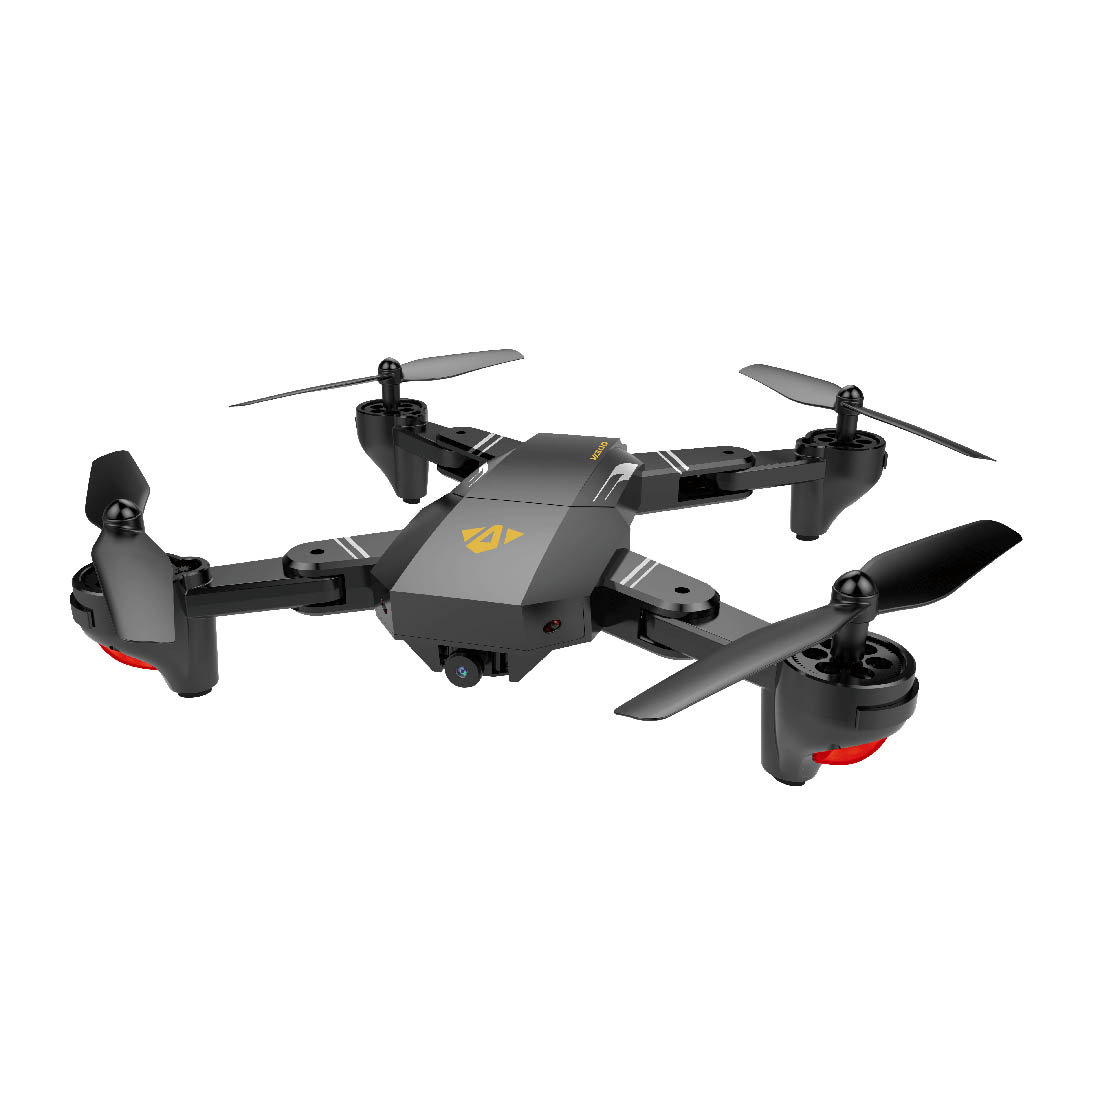 XS809W WiFi FPV Foldable RC Quadcopter with Camera , 2.4GHz 6-Axis Gyro Remote Control Drone Gravity Sensor AltitXS809W WiFi FPV Foldable RC Quadcopter with Camera , 2.4GHz 6-Axis Gyro Remote Control Drone Gravity Sensor Altit